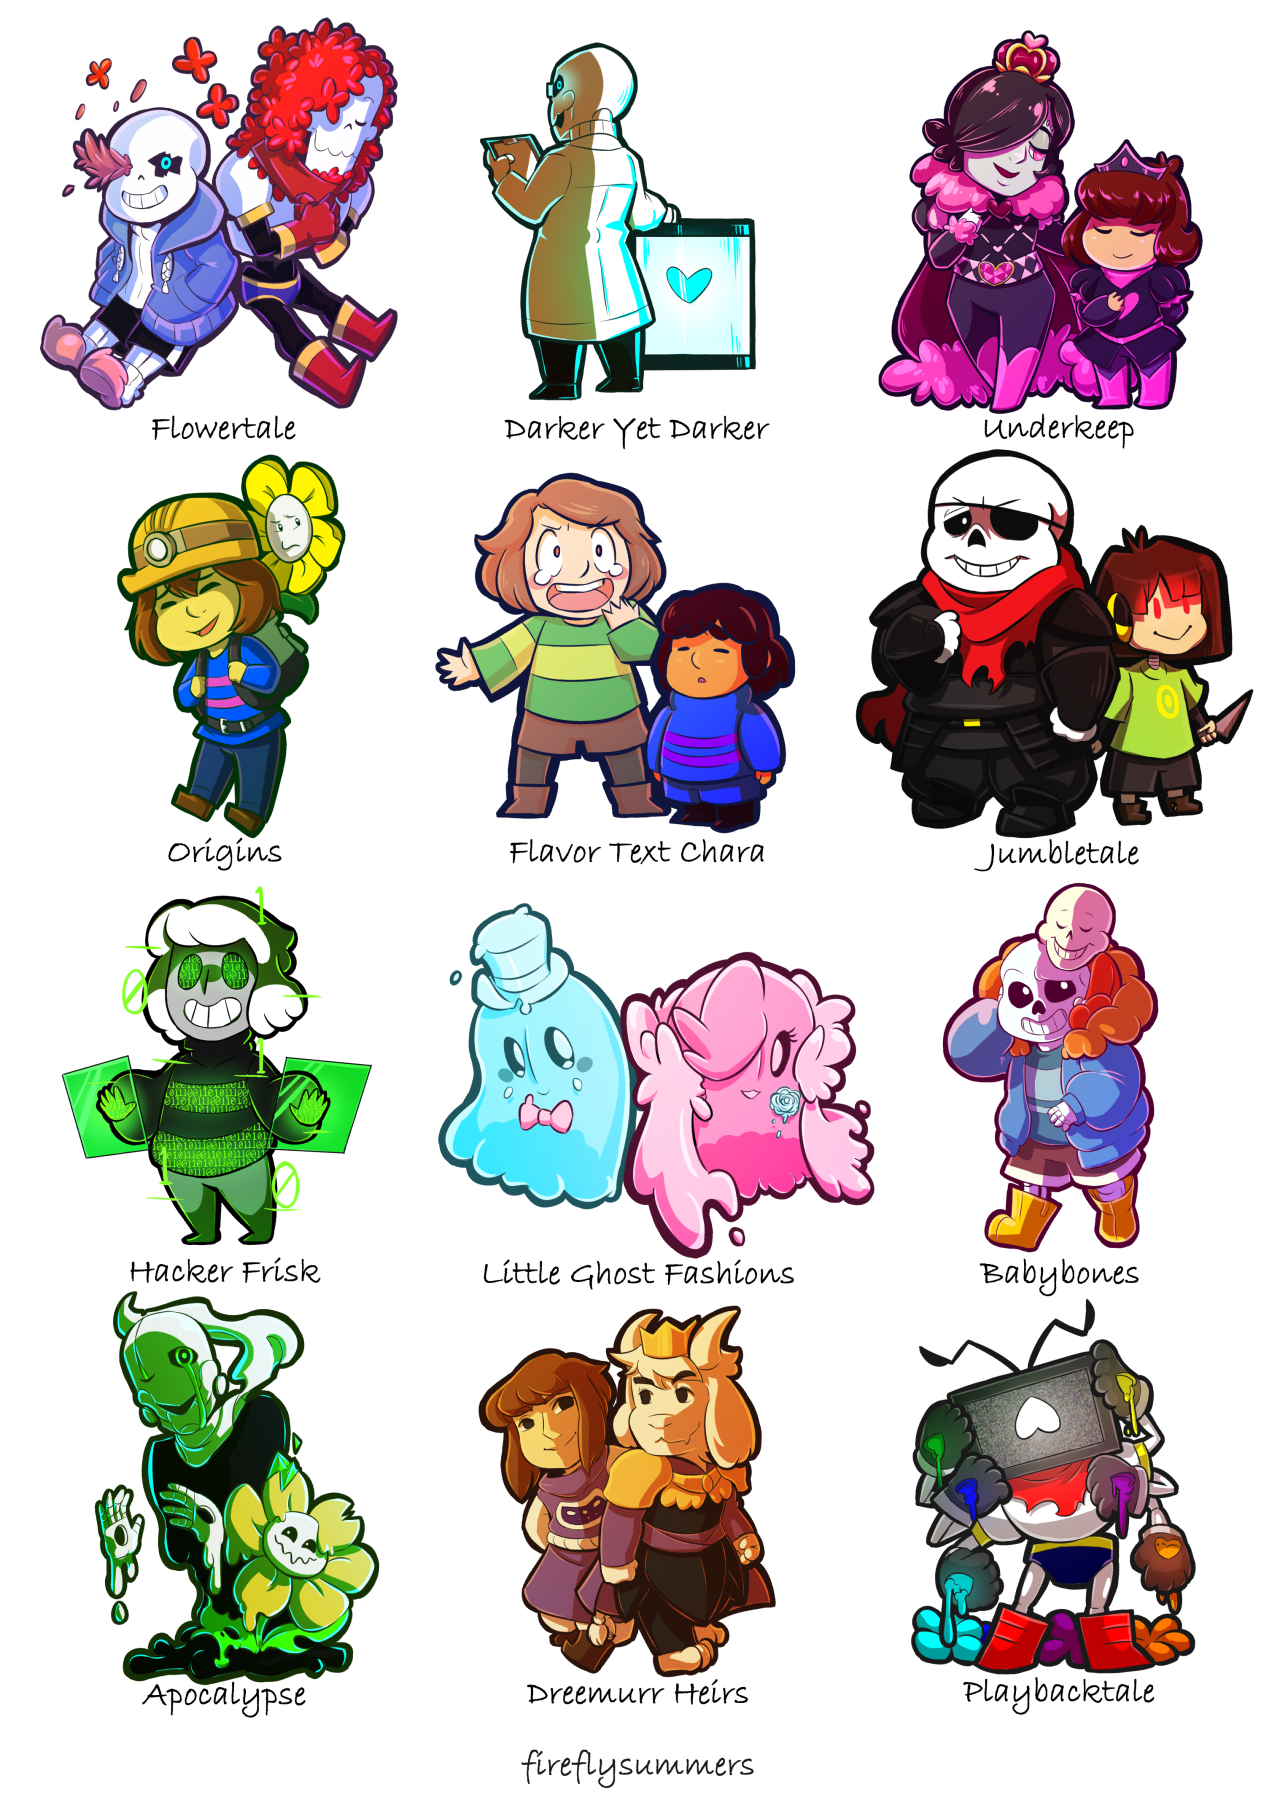 a brief preview of Tumblr undertale AUs | Undertale | Know